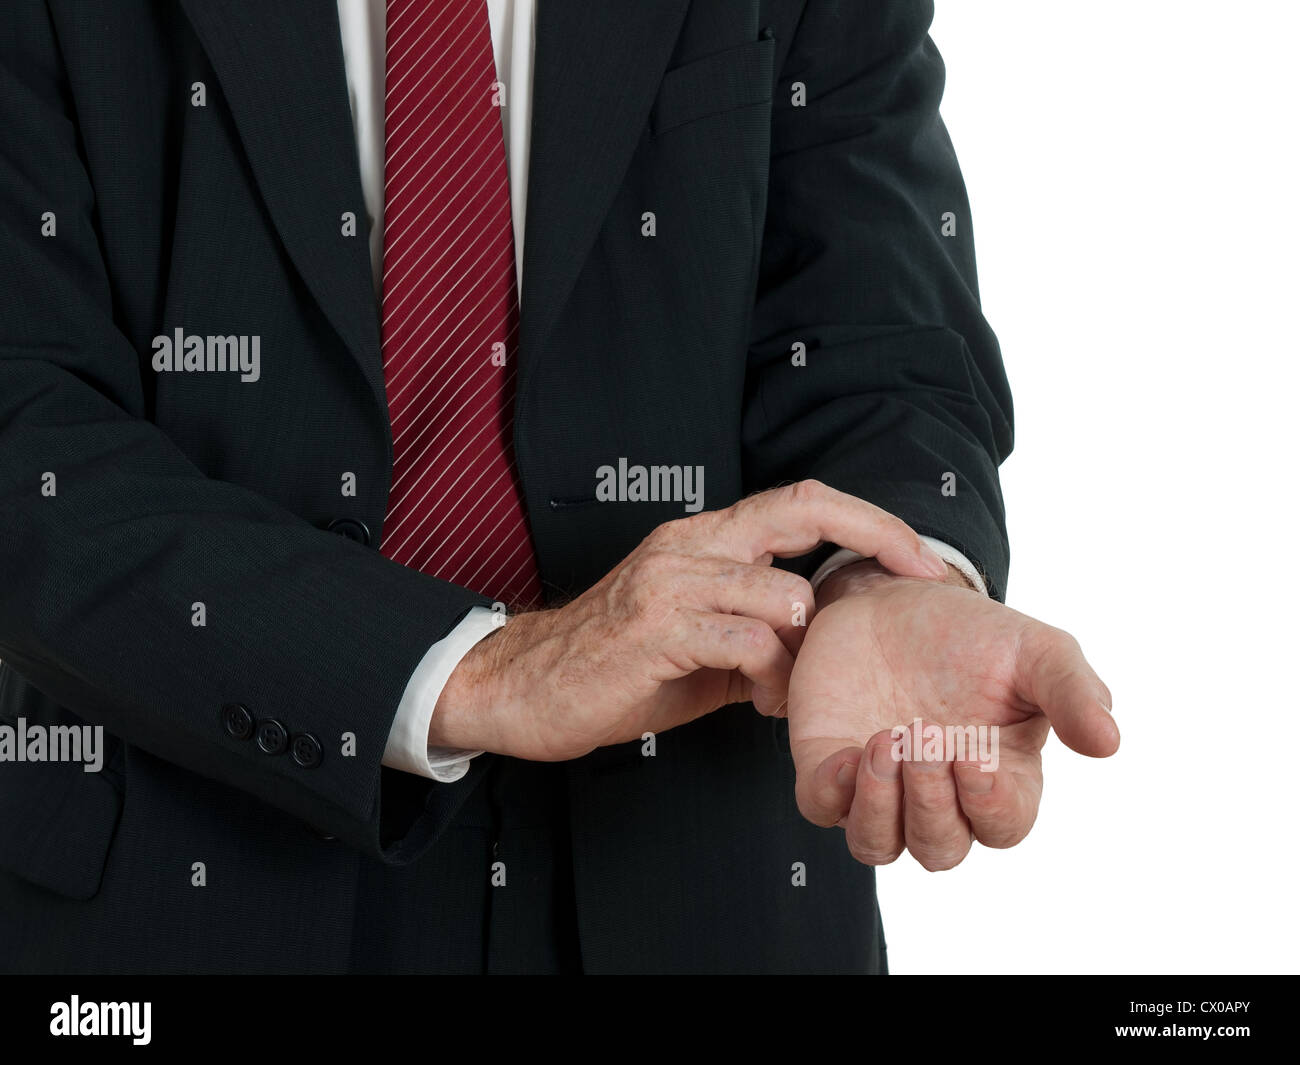 Man in business suit taking his own pulse, white background - Stock Image